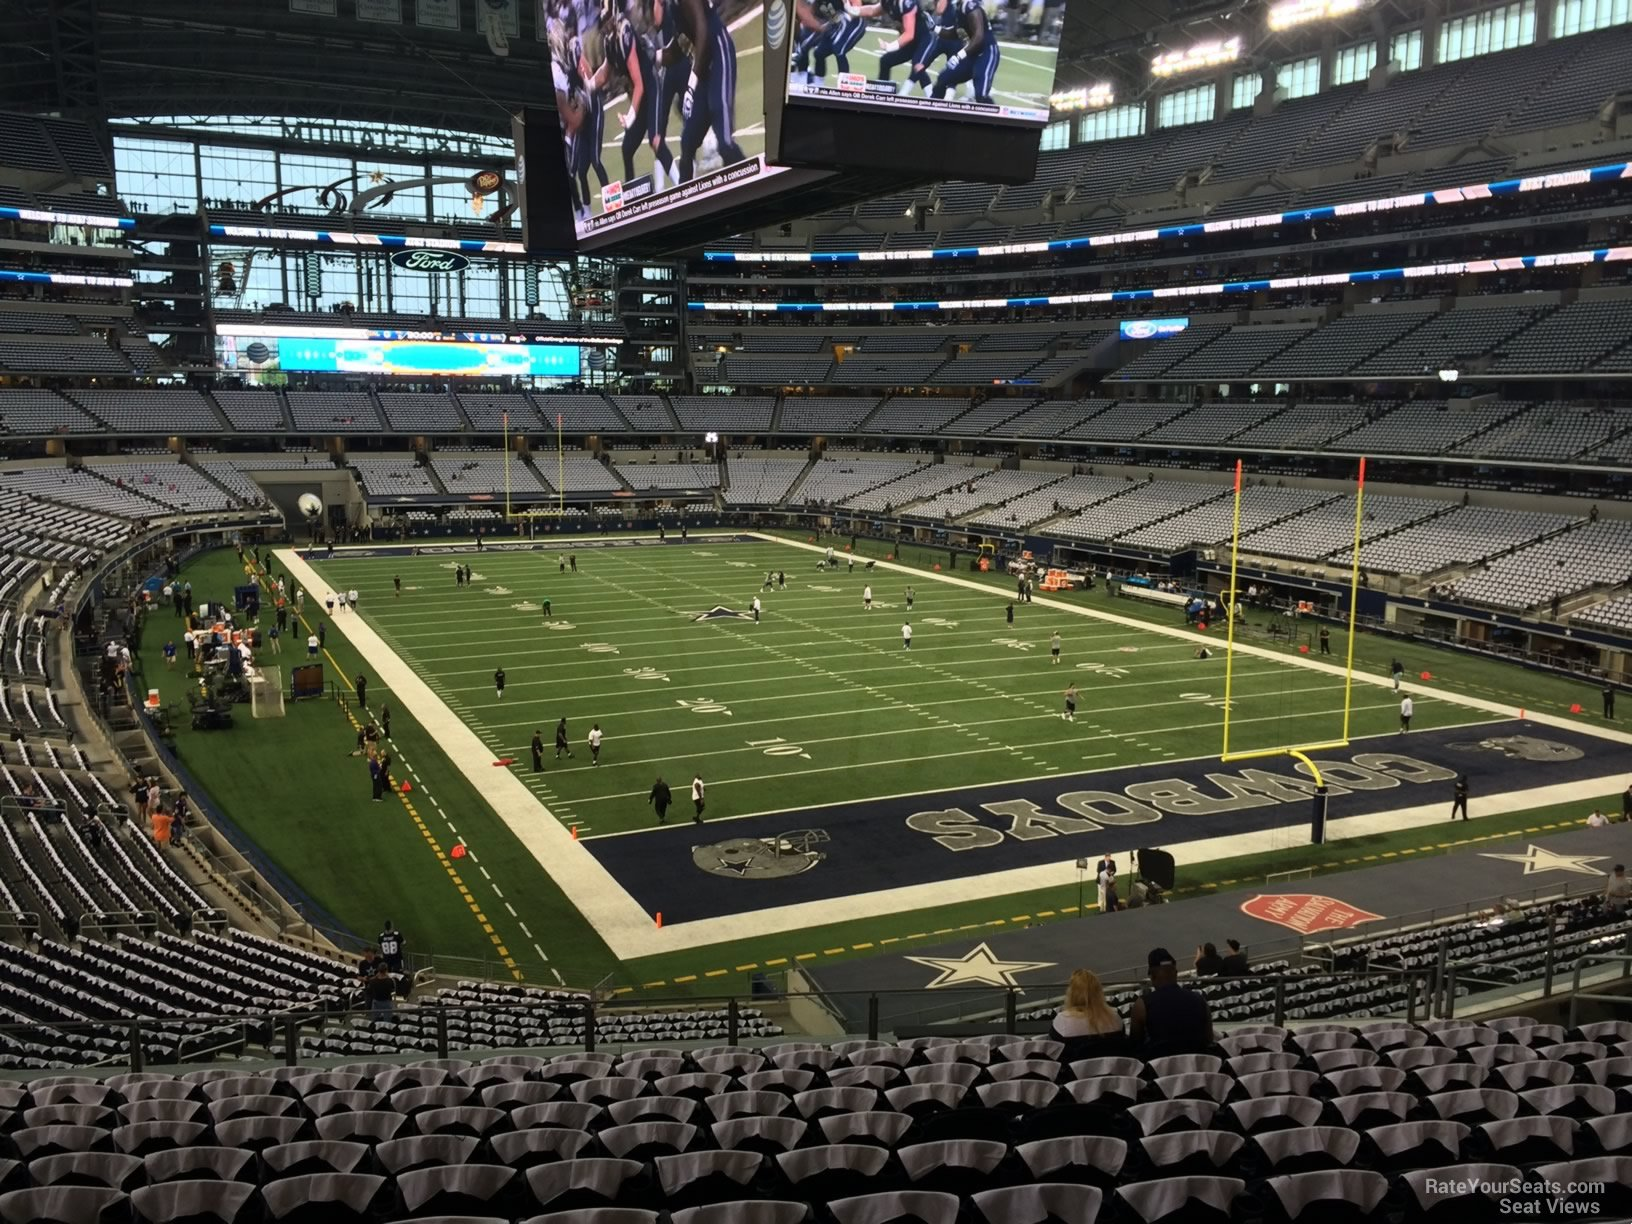 View from Section 226 Row 13 at AT&T Stadium